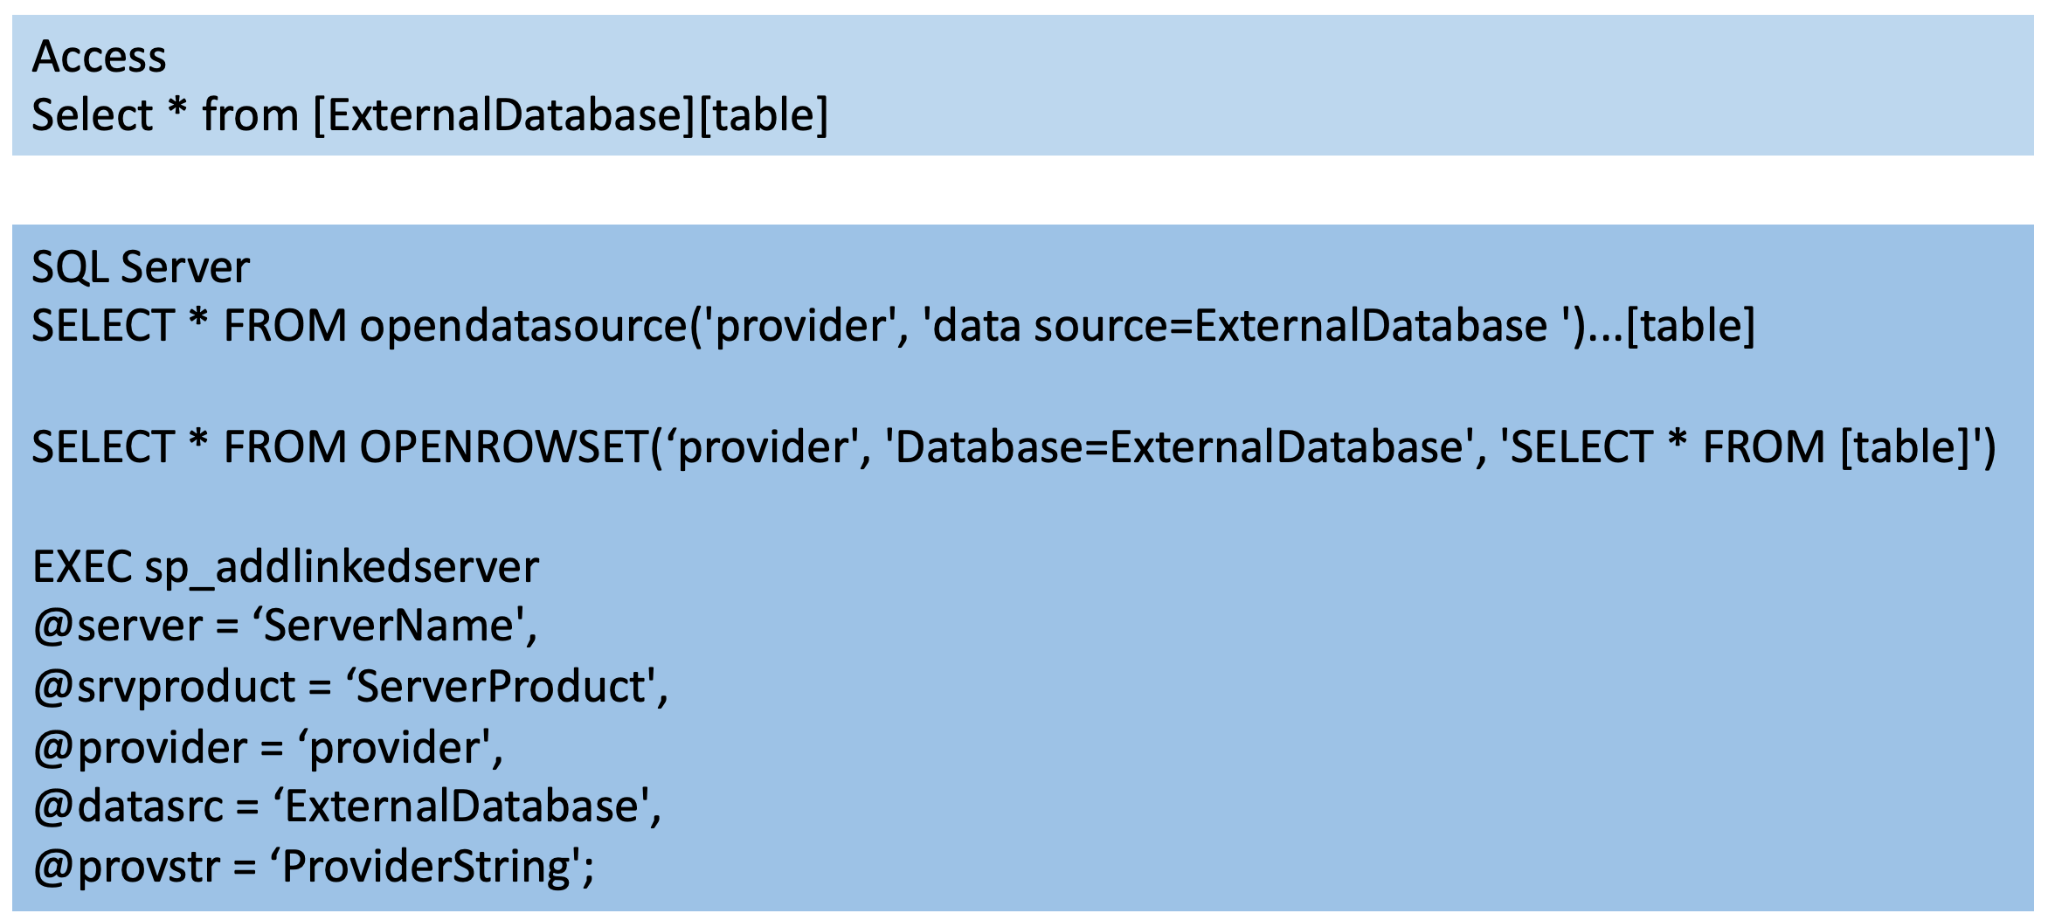 Users can assign a remote database when executing SQL queries on tables by adding a database path ahead of the table in MS Jet and using OPENDATASOURCEopendatasource, OPENROWSET or addlinkedserver in ACE, as shown here.